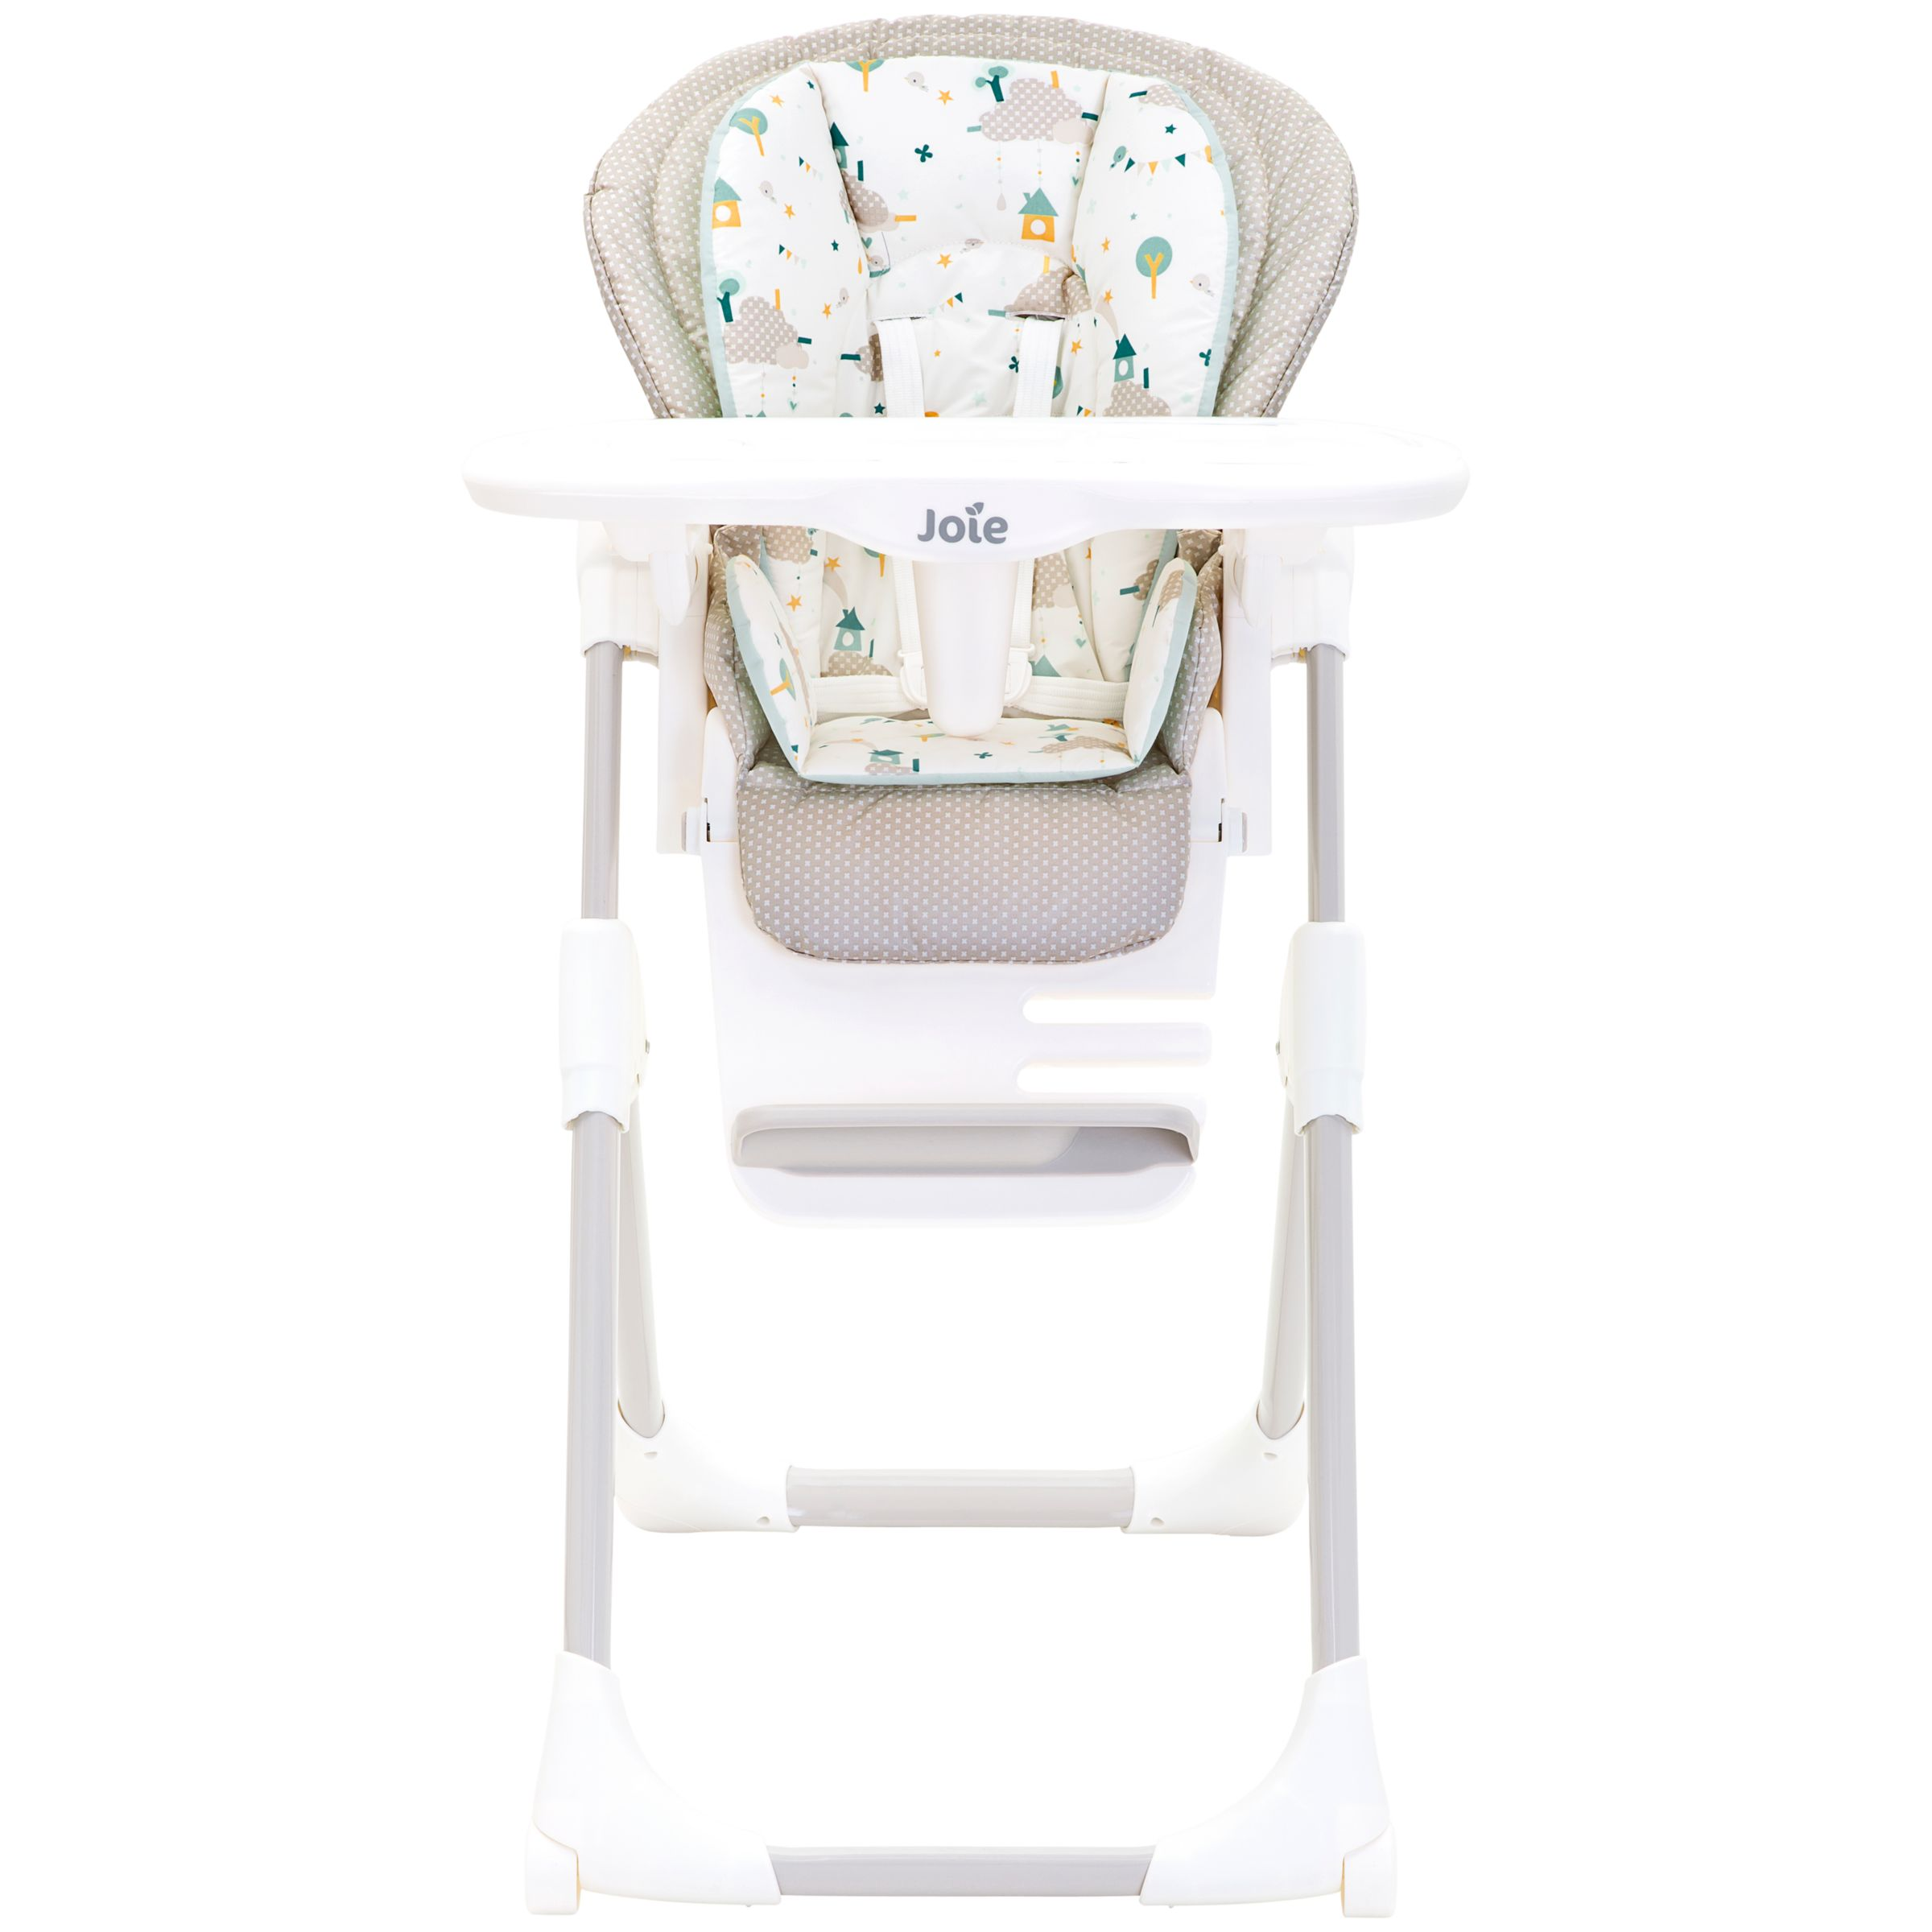 Joie Baby Joie Baby Mimzy LX Highchair, Little World